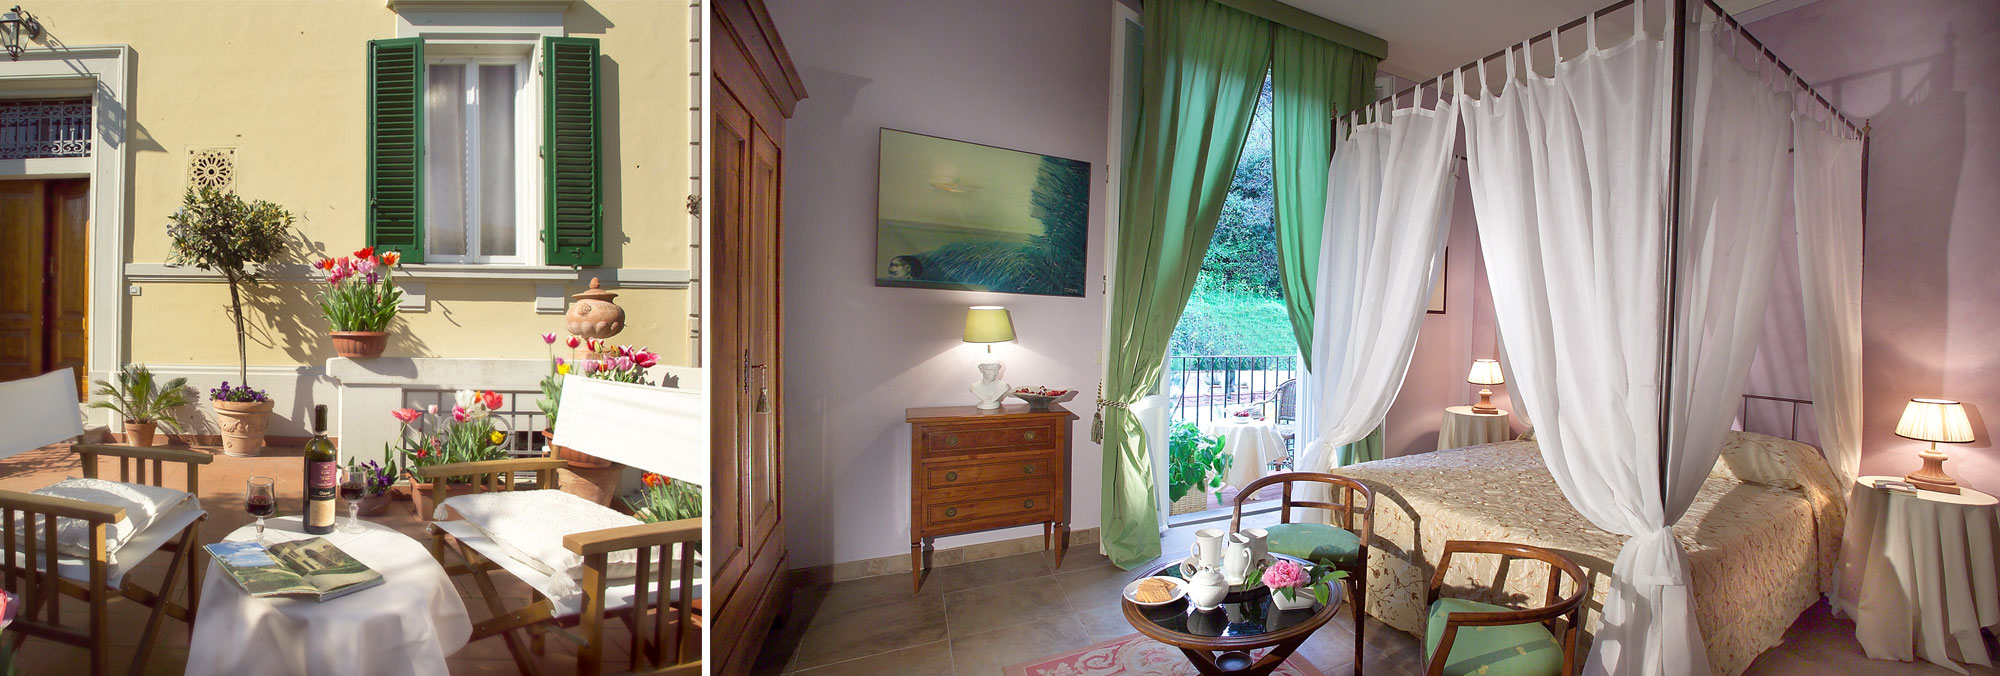 Bed and Breakfast a Firenze, B&B Monte Oliveto Firenze Oltrarno